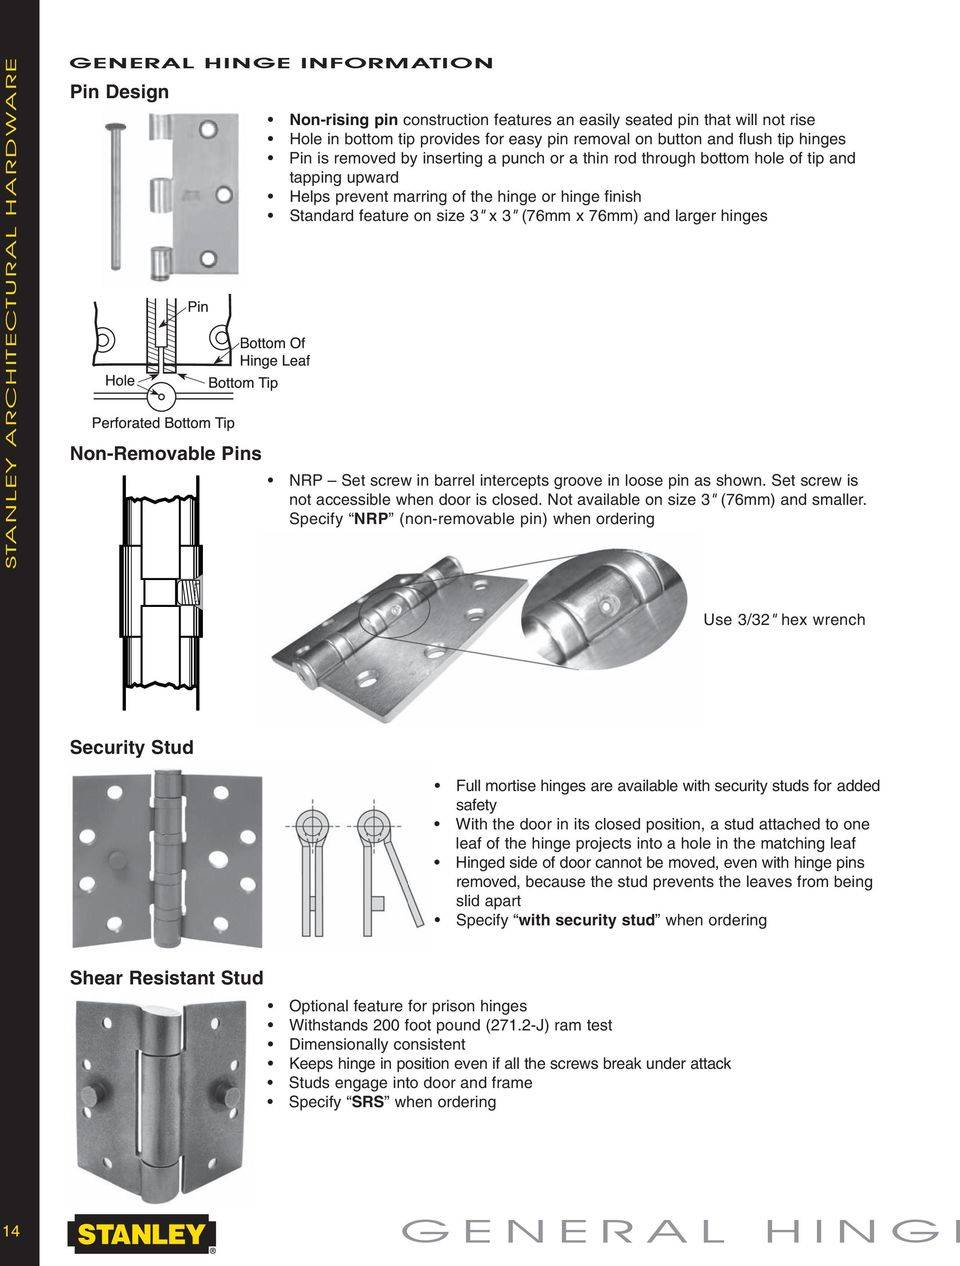 Stanley Ce Hinge Template